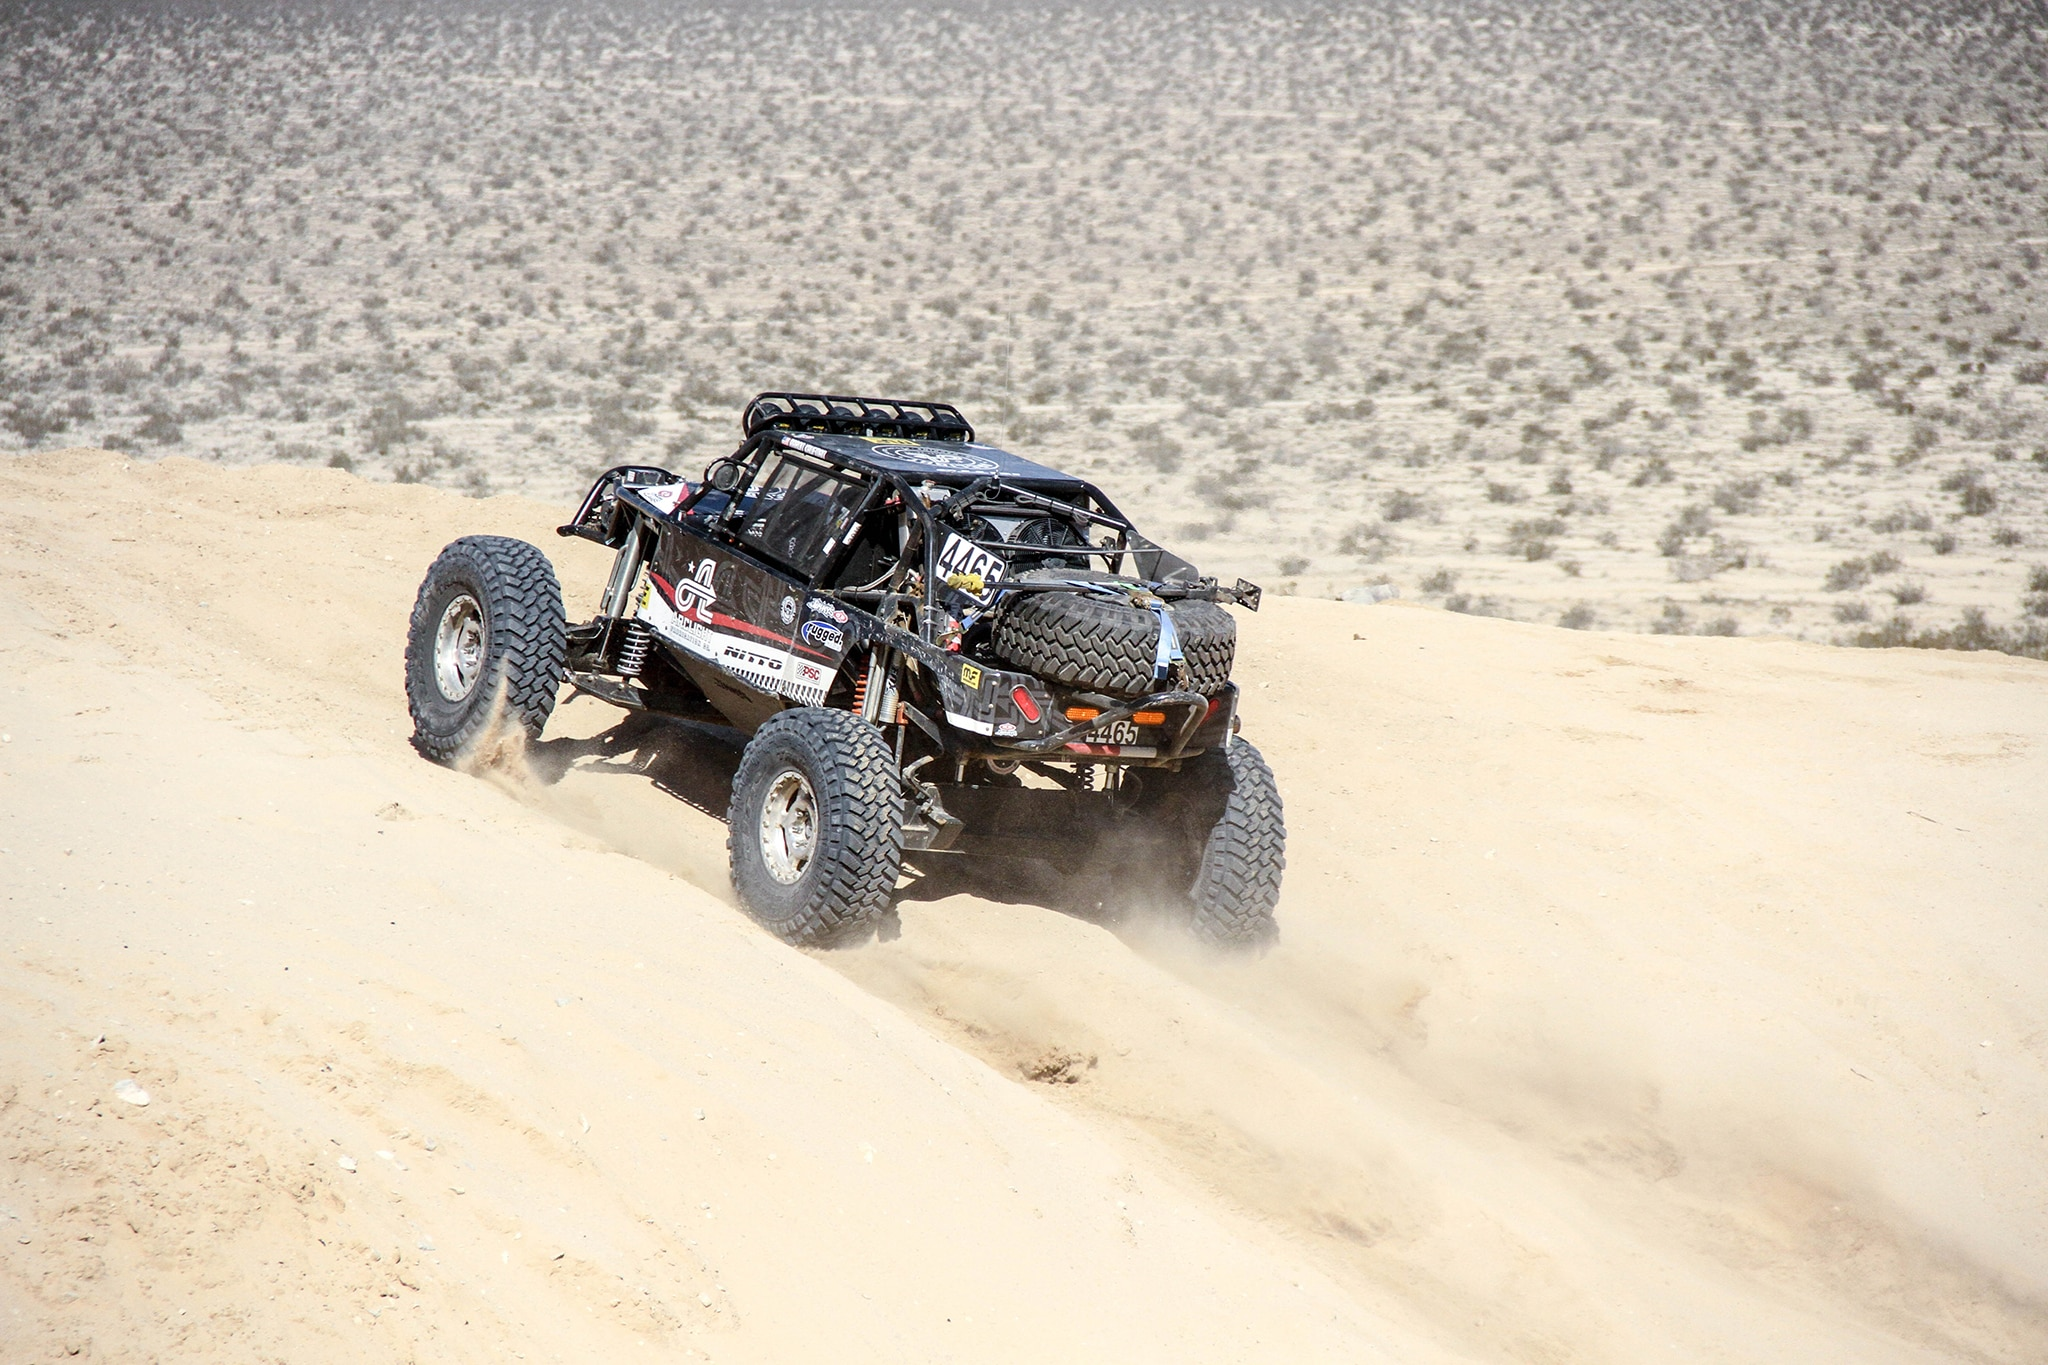 2019 King Of The Hammers Race 26